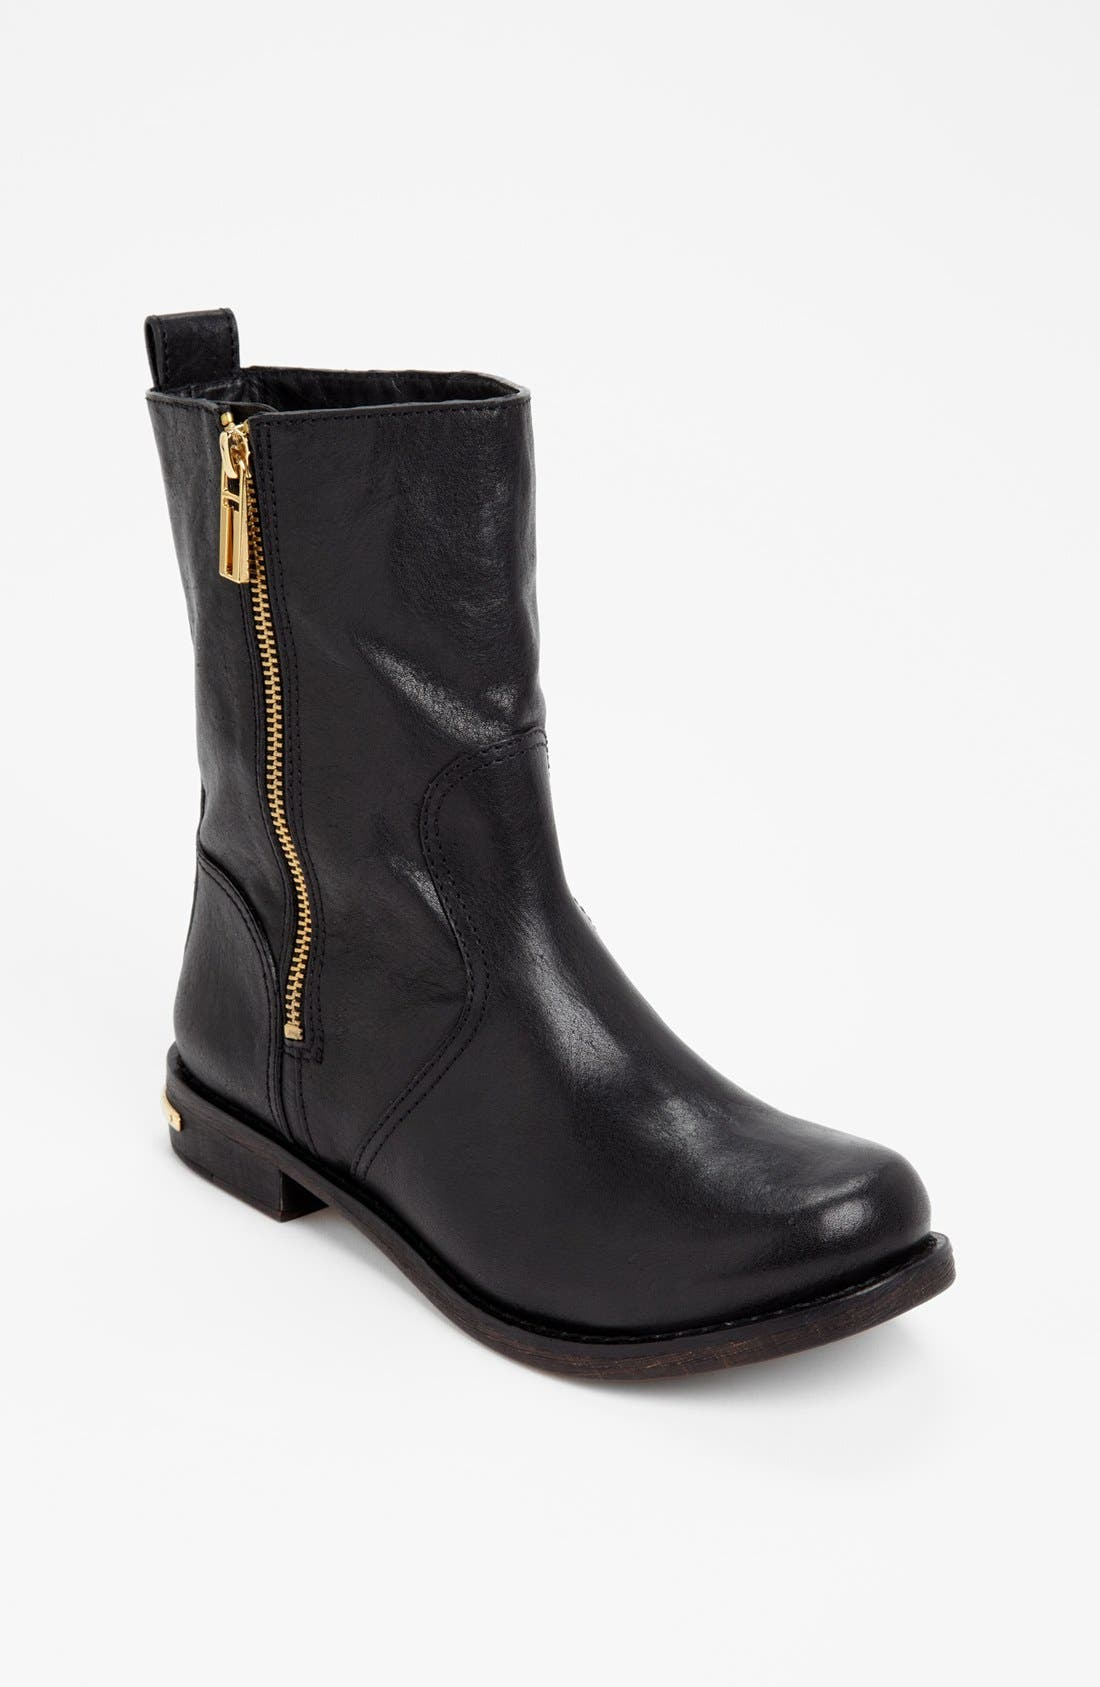 Alternate Image 1 Selected - Tory Burch 'Elyse' Bootie